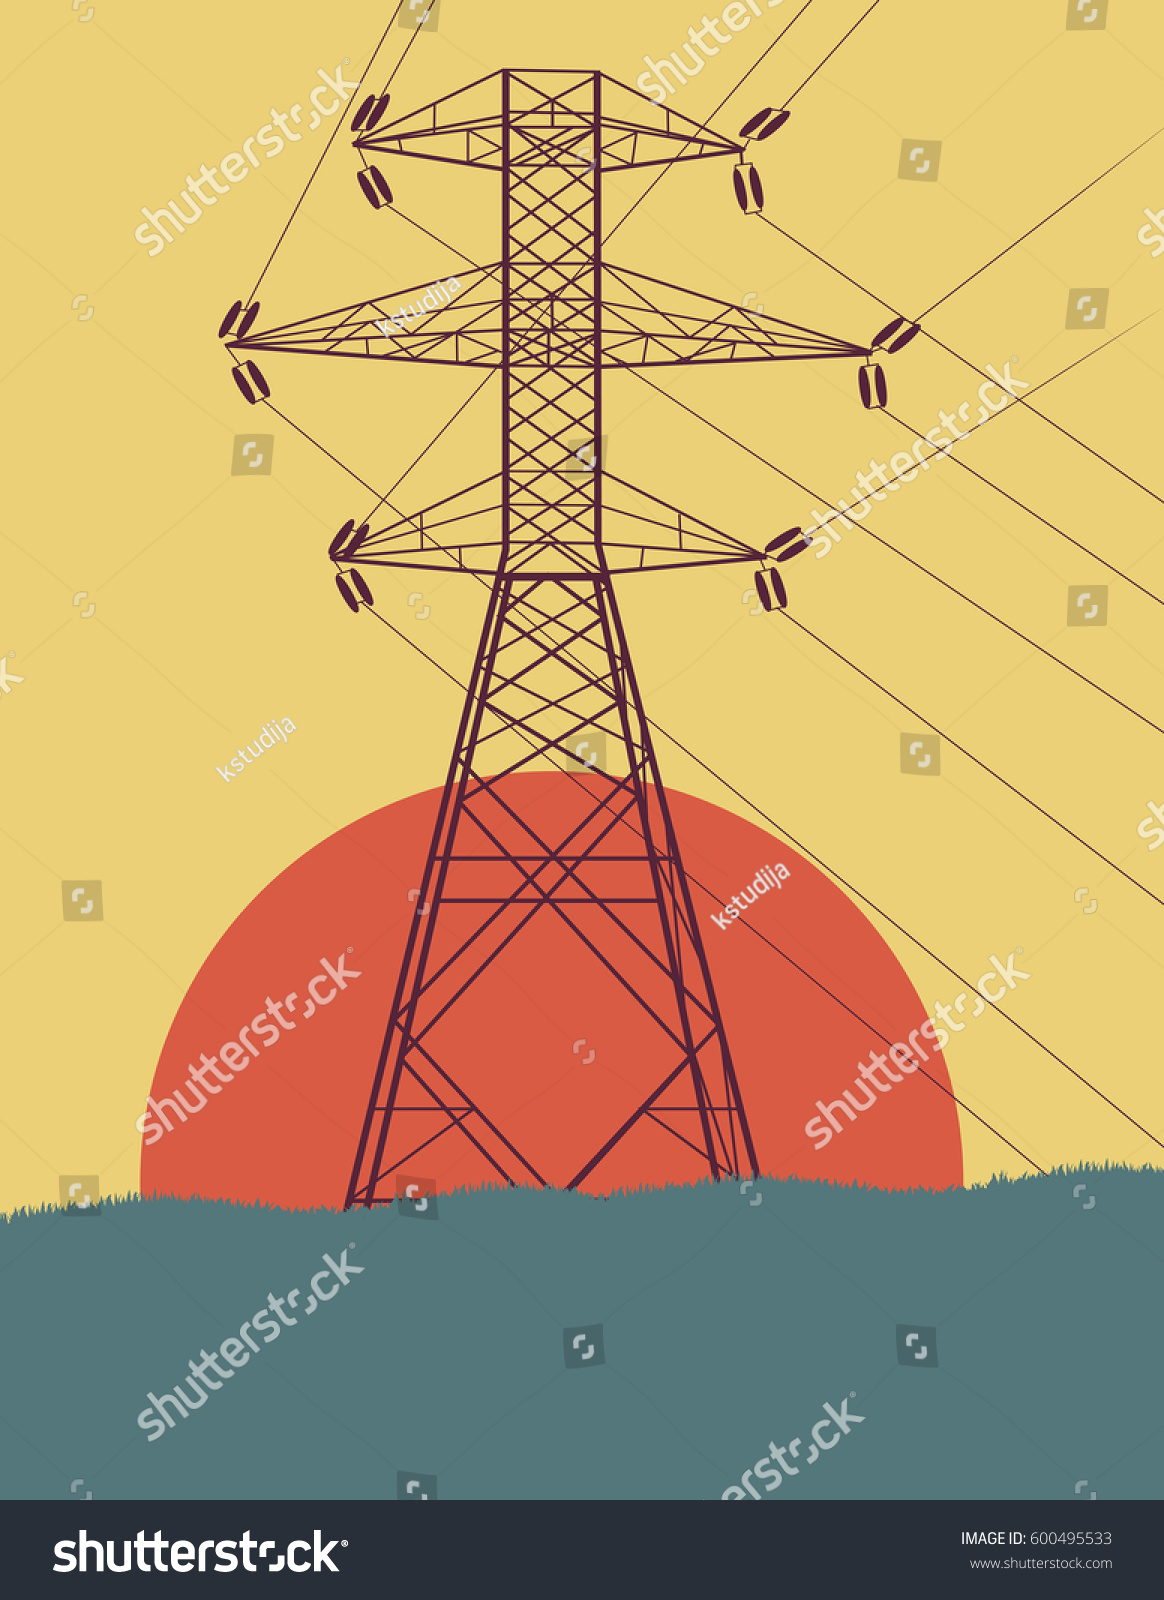 hight resolution of energy distribution high voltage power line tower with wires vector background